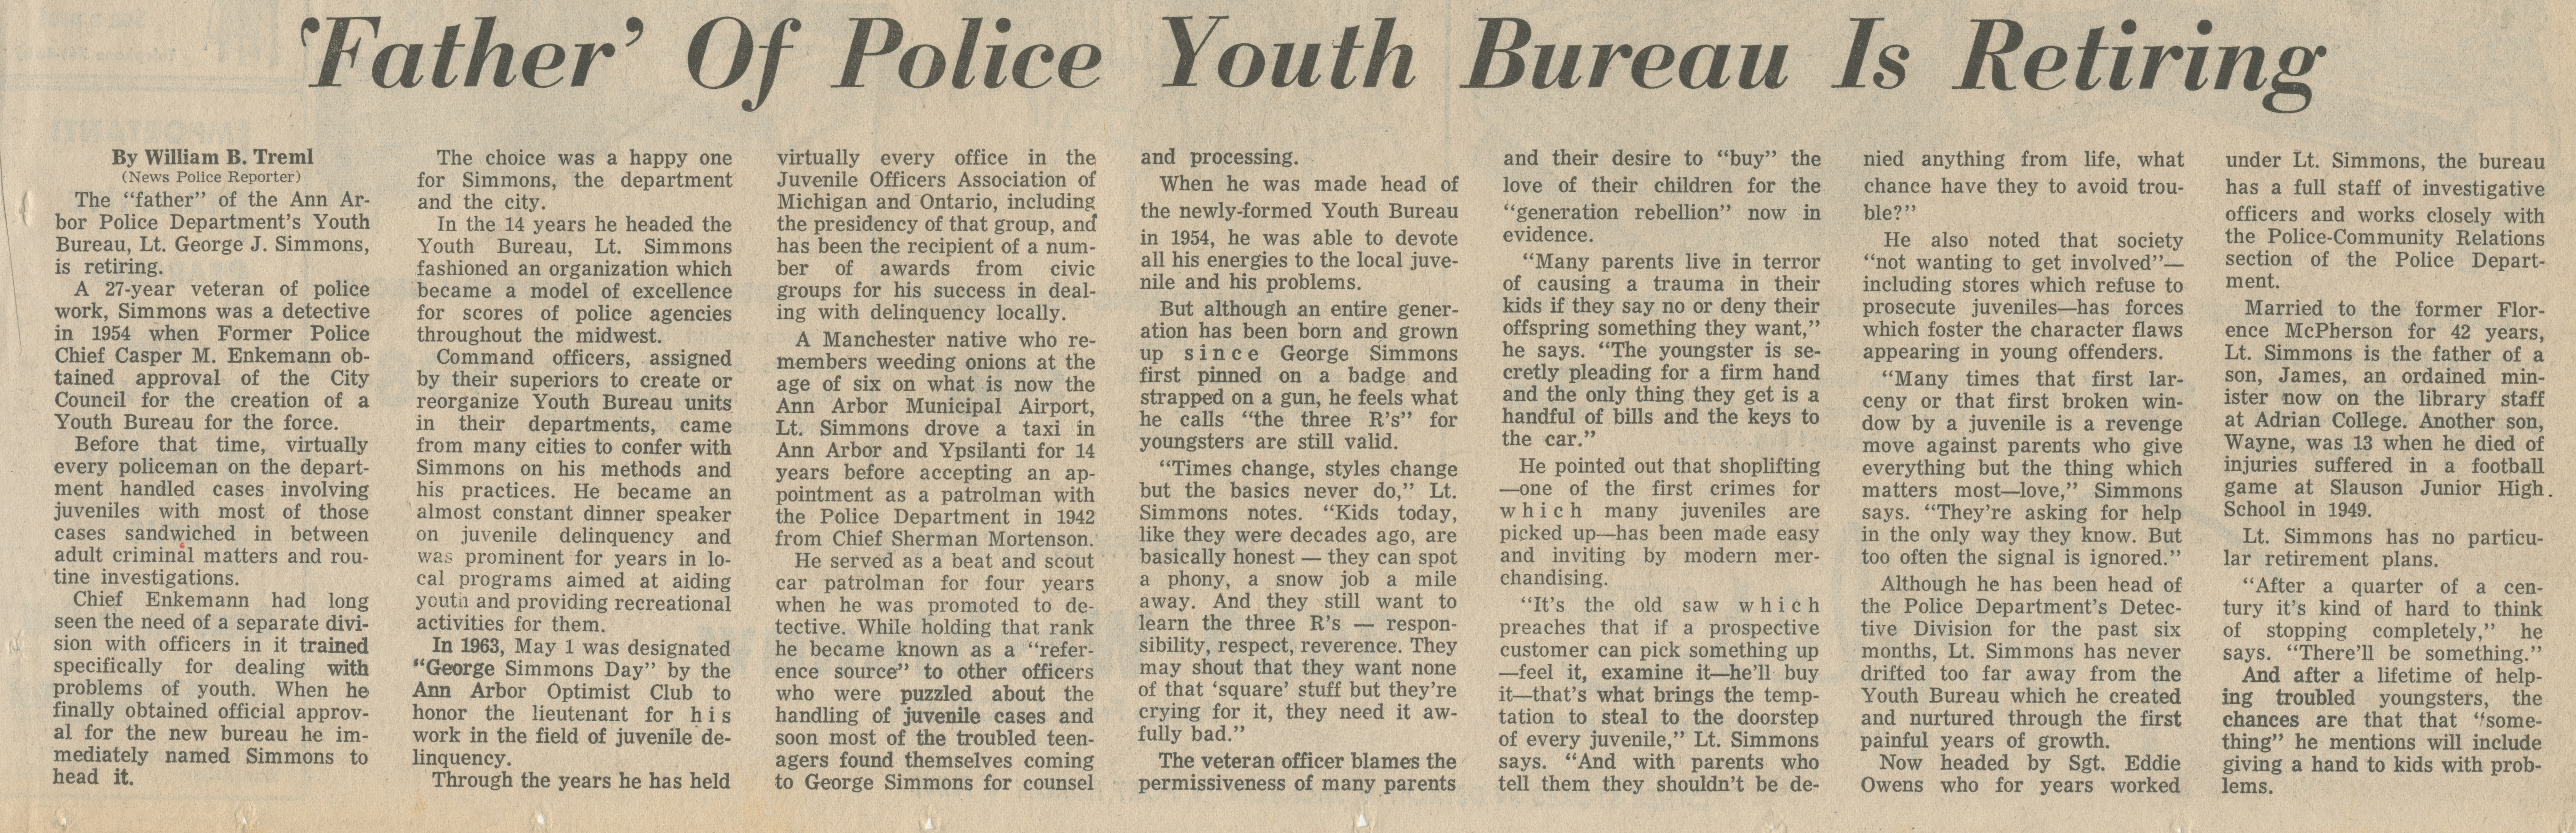 'Father' Of Police Youth Bureau Is Retiring image